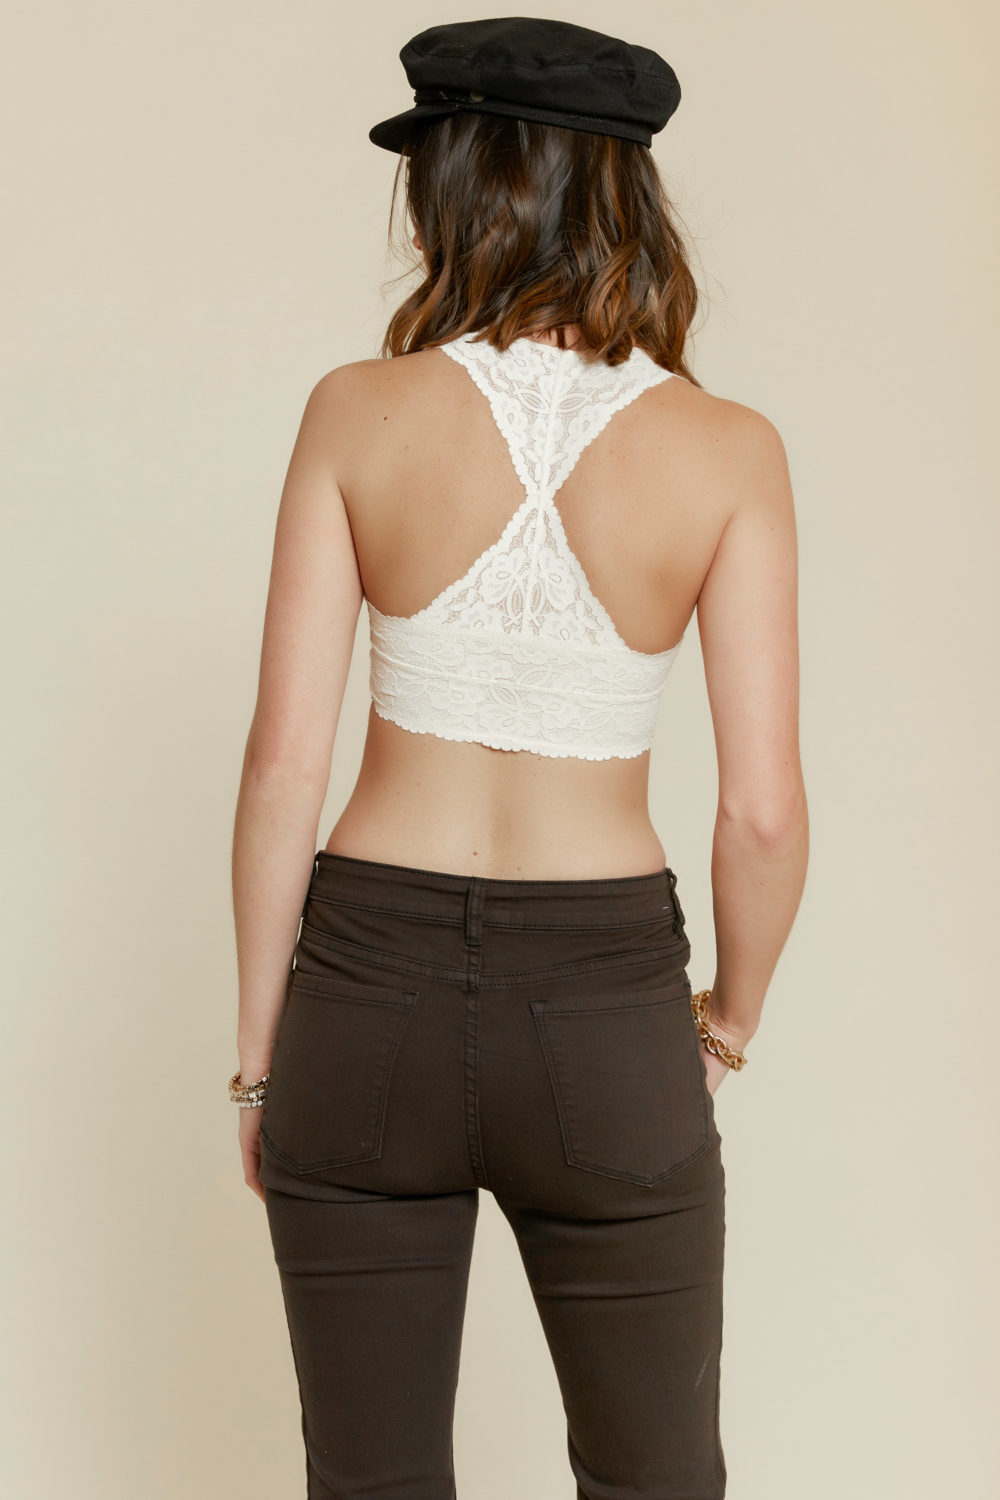 Free People: Galloon Lace Bralette in Ivory